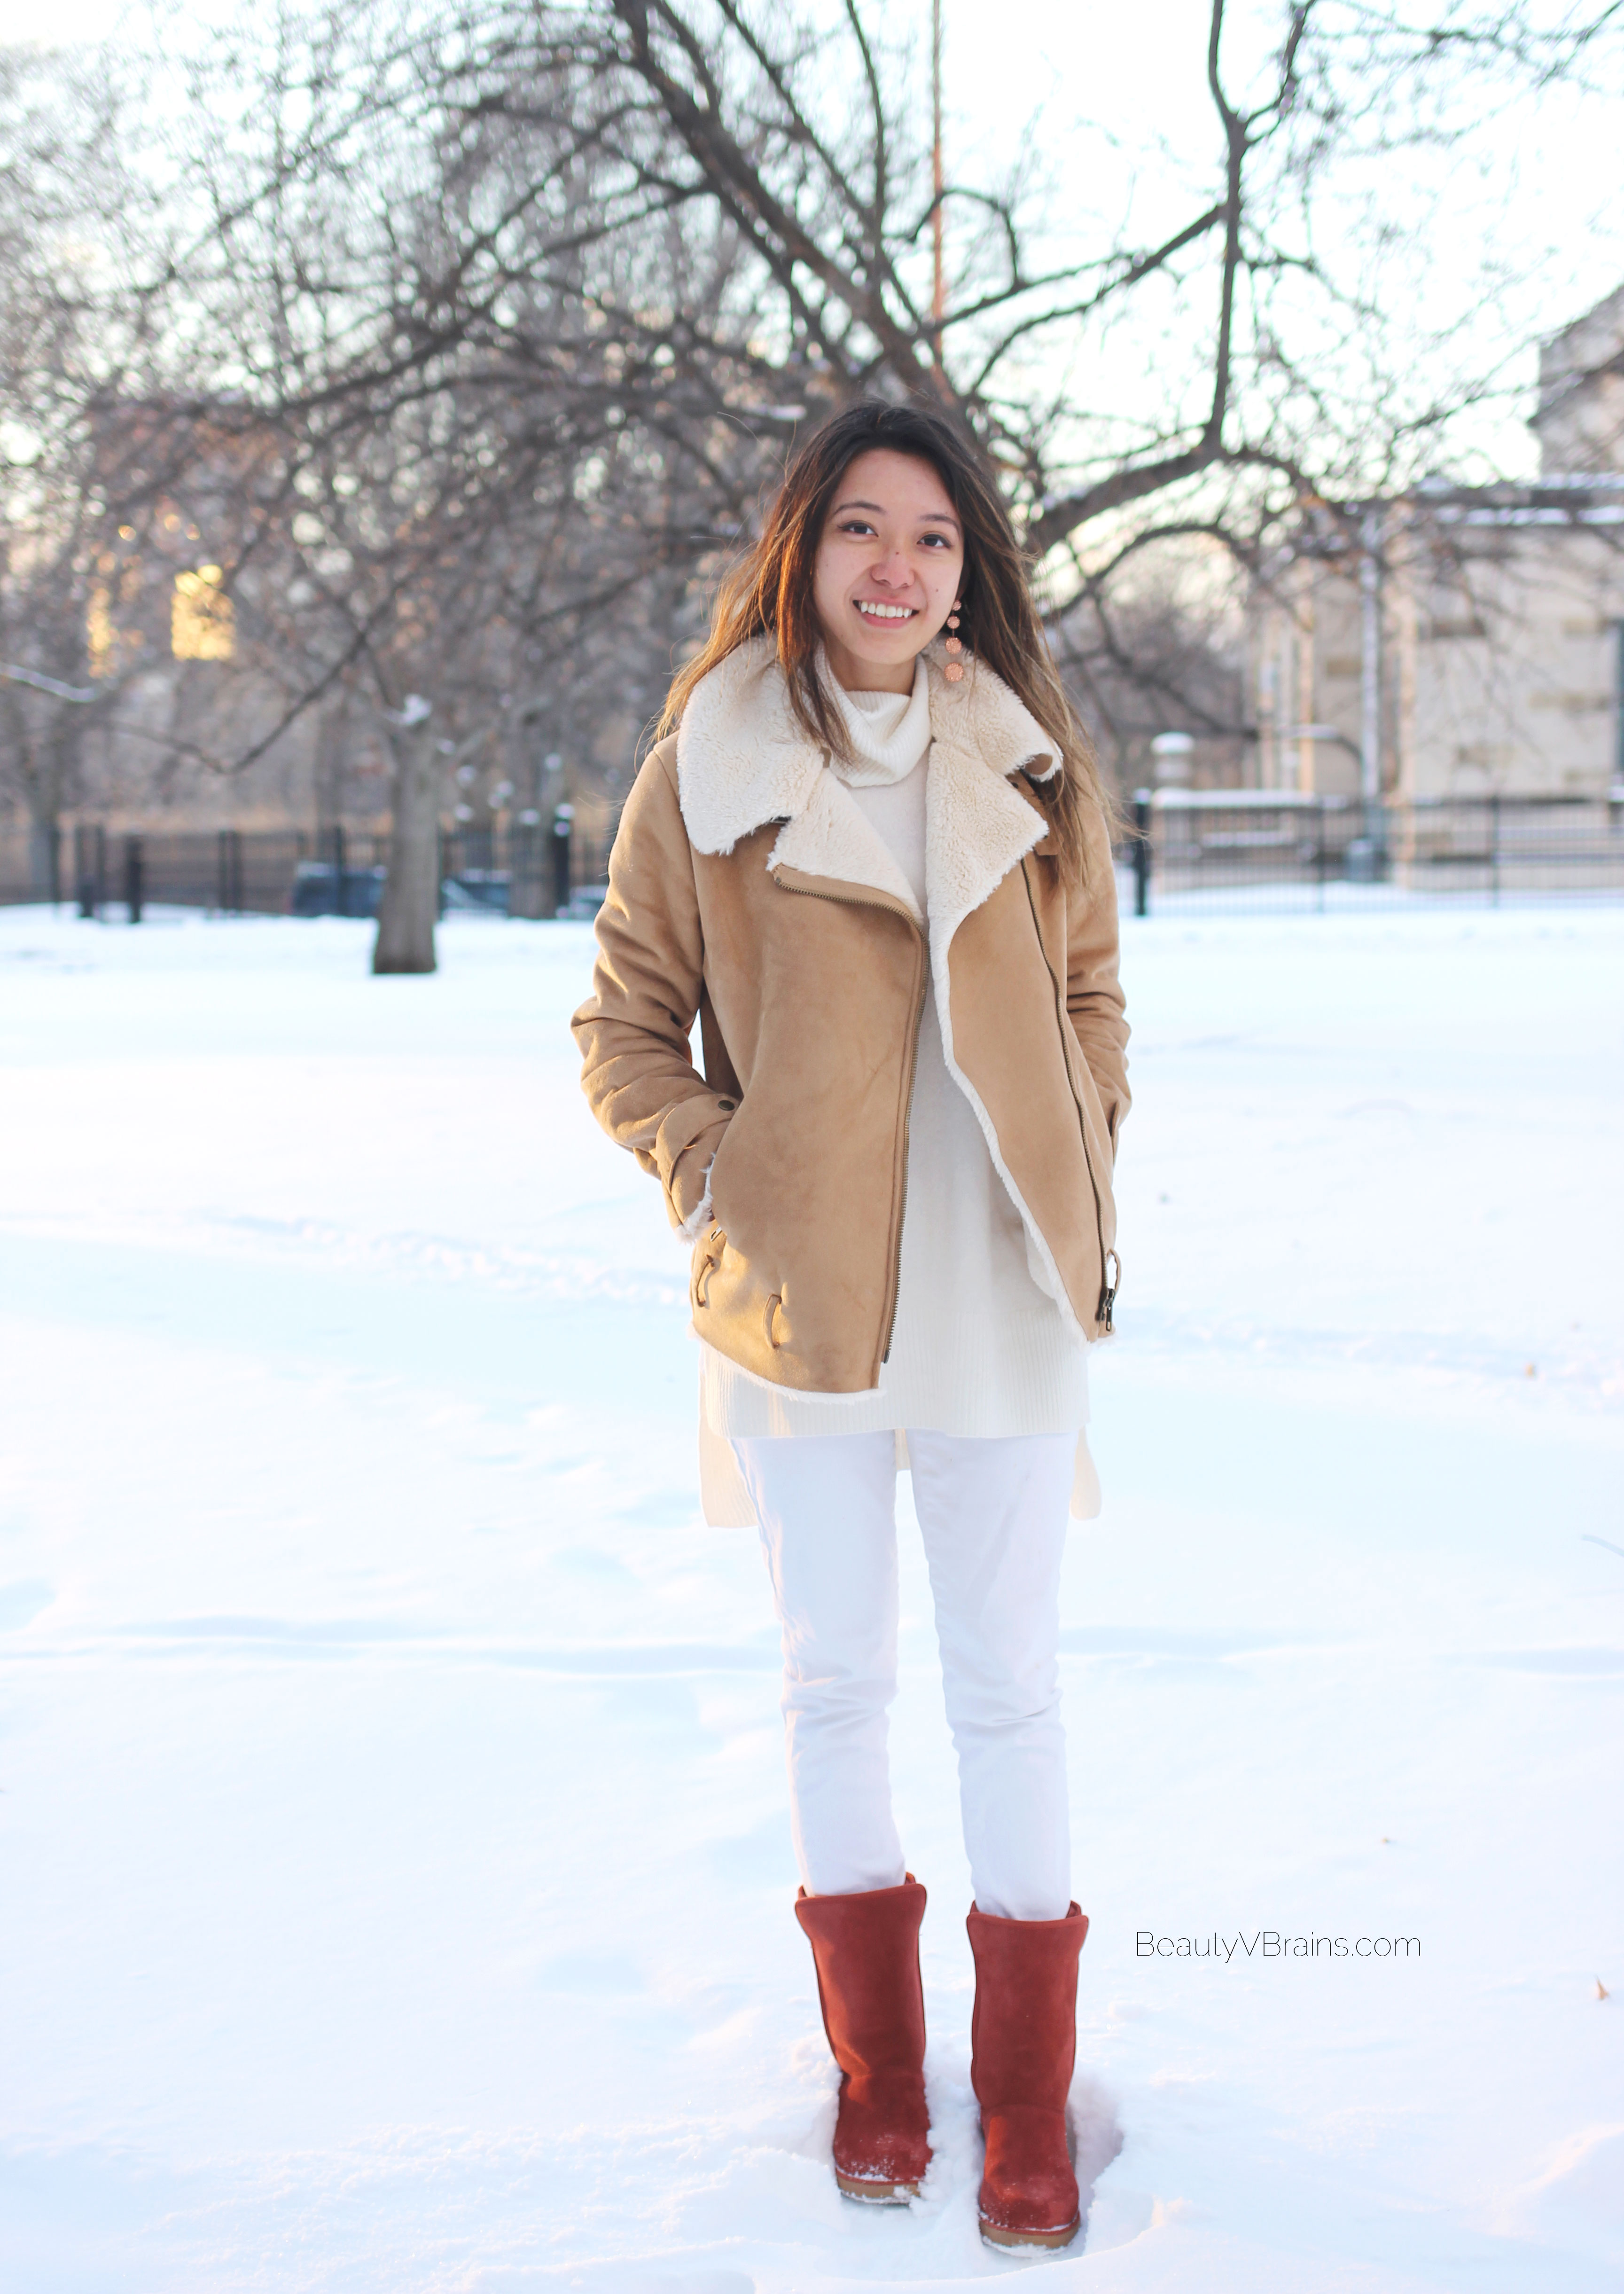 Red suede uggs and winter white outfit